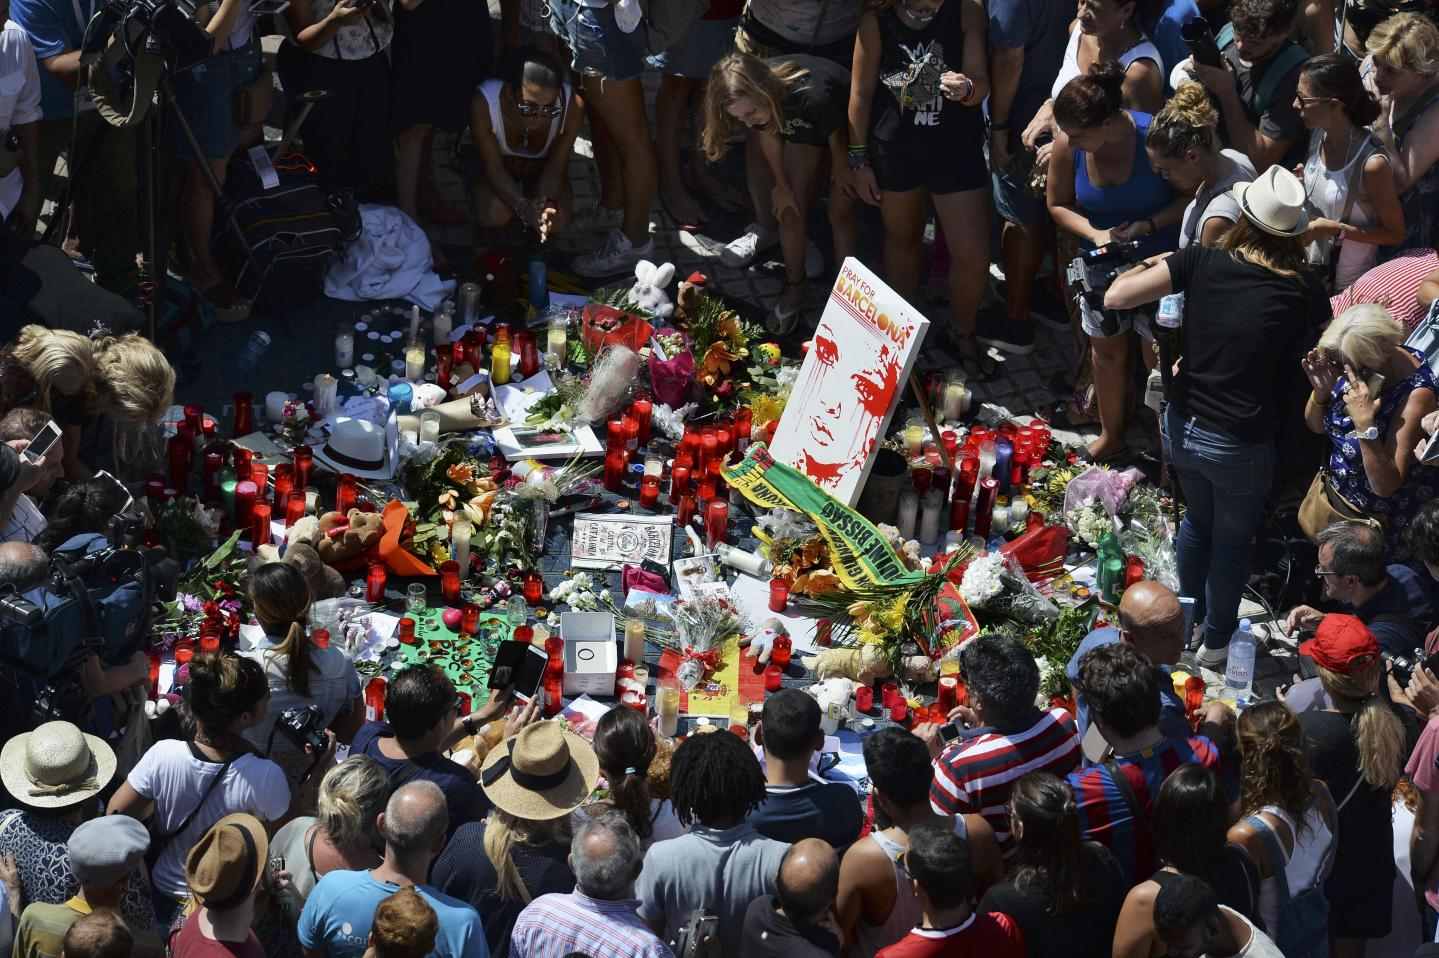 People gather to leave candles, flowers, messages, stuffed toys and many differents objects for the victims on August 18, 2017 at the spot where yesterday a van ploughed into the crowd, killing 14 persons and injuring over 100 on the Rambla boulevard in Barcelona.Drivers have ploughed on August 17, 2017 into pedestrians in two quick-succession, separate attacks in Barcelona and another popular Spanish seaside city, leaving 14 people dead and injuring more than 100 others. In the first incident, which was claimed by the Islamic State group, a white van sped into a street packed full of tourists in central Barcelona on Thursday afternoon, knocking people out of the way and killing 13 in a scene of chaos and horror. Some eight hours later in Cambrils, a city 120 kilometres south of Barcelona, an Audi A3 car rammed into pedestrians, injuring six civilians -- one of them critical -- and a police officer, authorities said. / AFP PHOTO / Josep LAGO SPAIN-ATTACK-BARCELONA